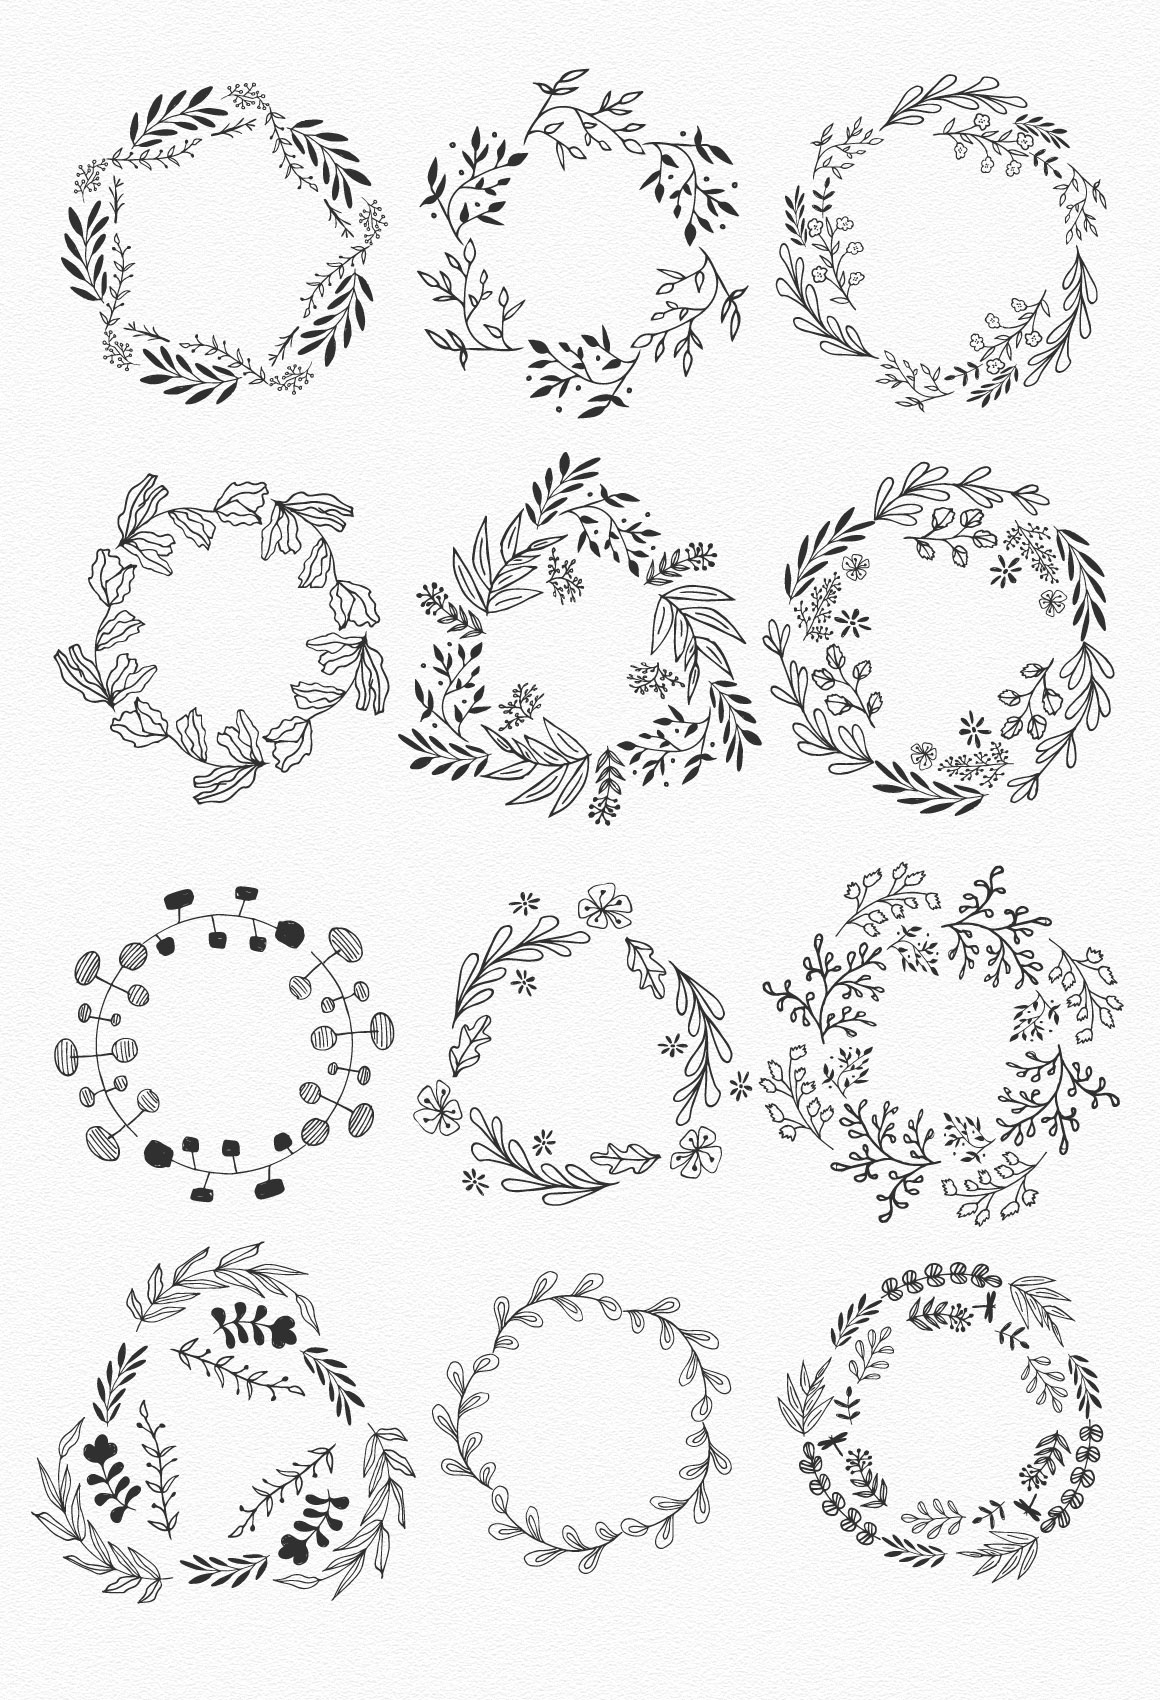 Wreaths and branches vol.2 example image 3